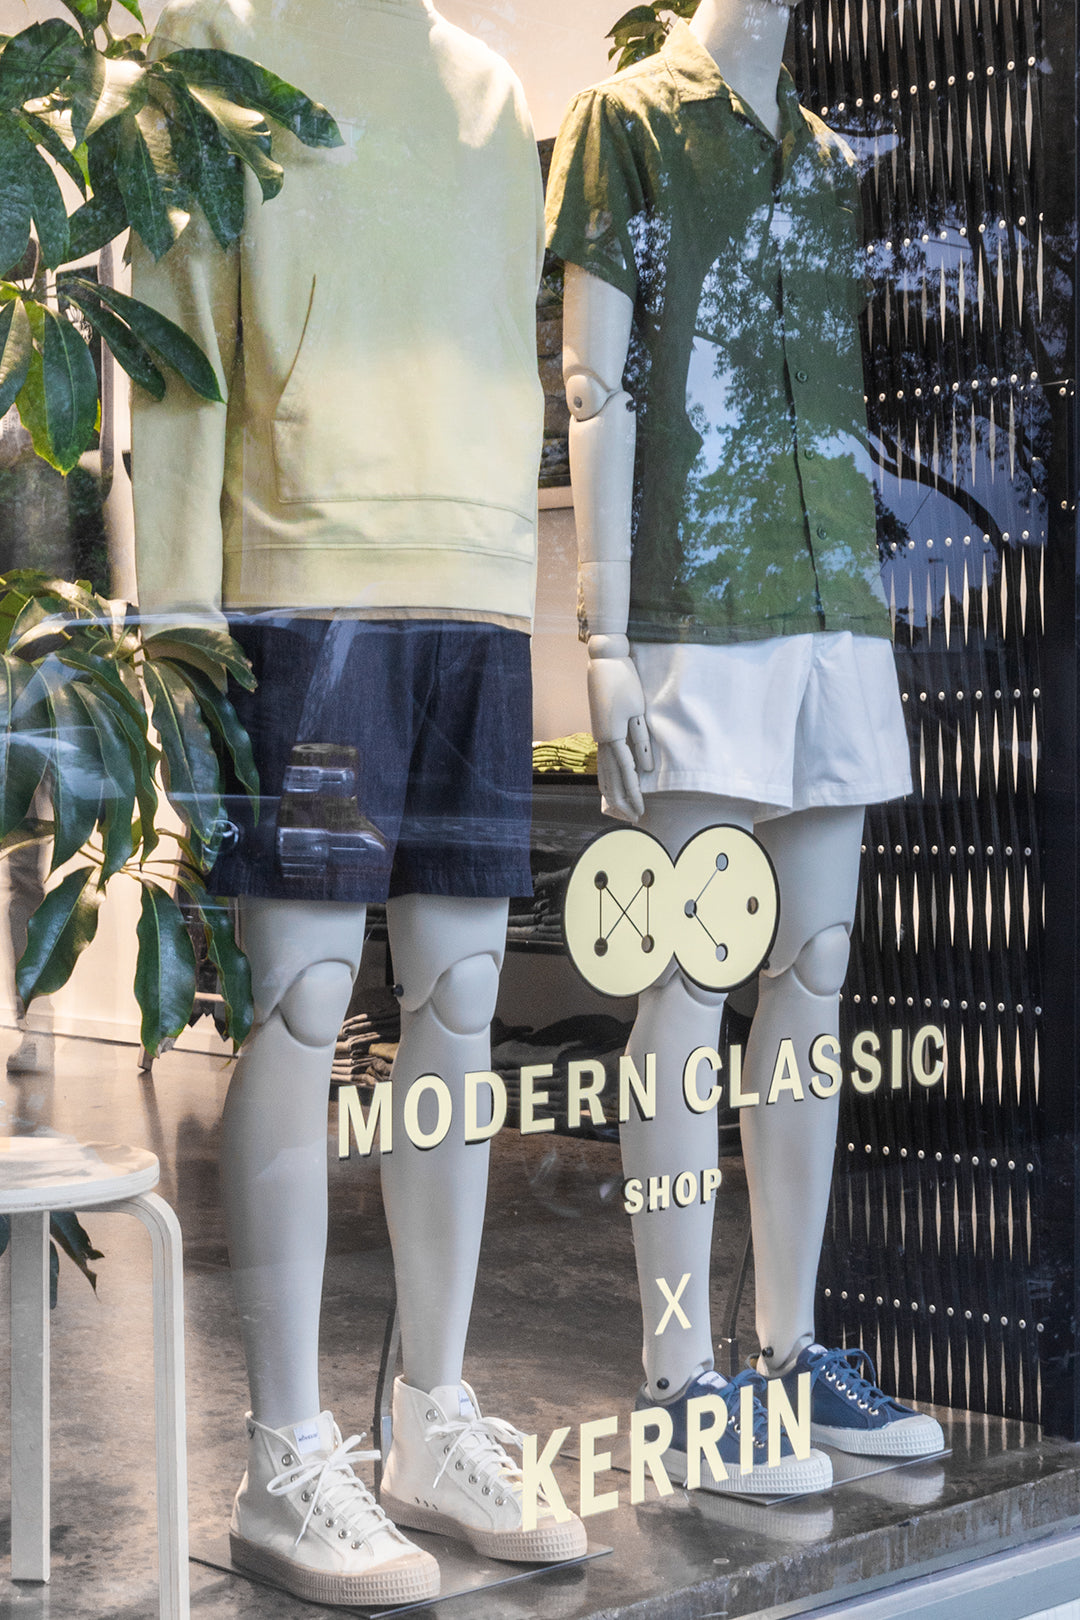 Modern Classic Shop Kerrin Windows